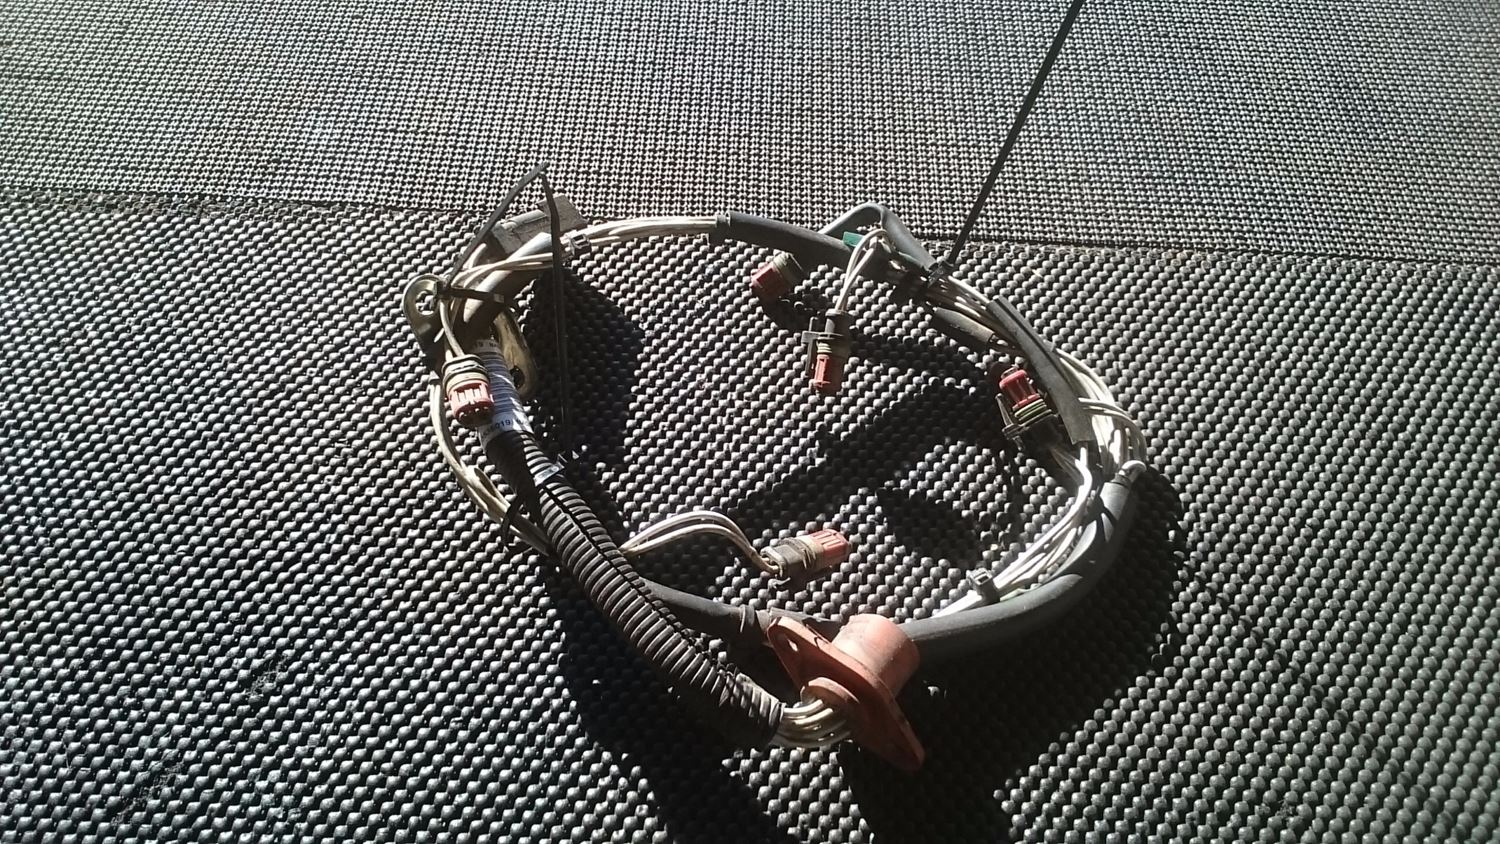 Wiring Harnesses New And Used Parts American Truck Chrome Injector Wire Harness Detroit Diesel Fuel Injection